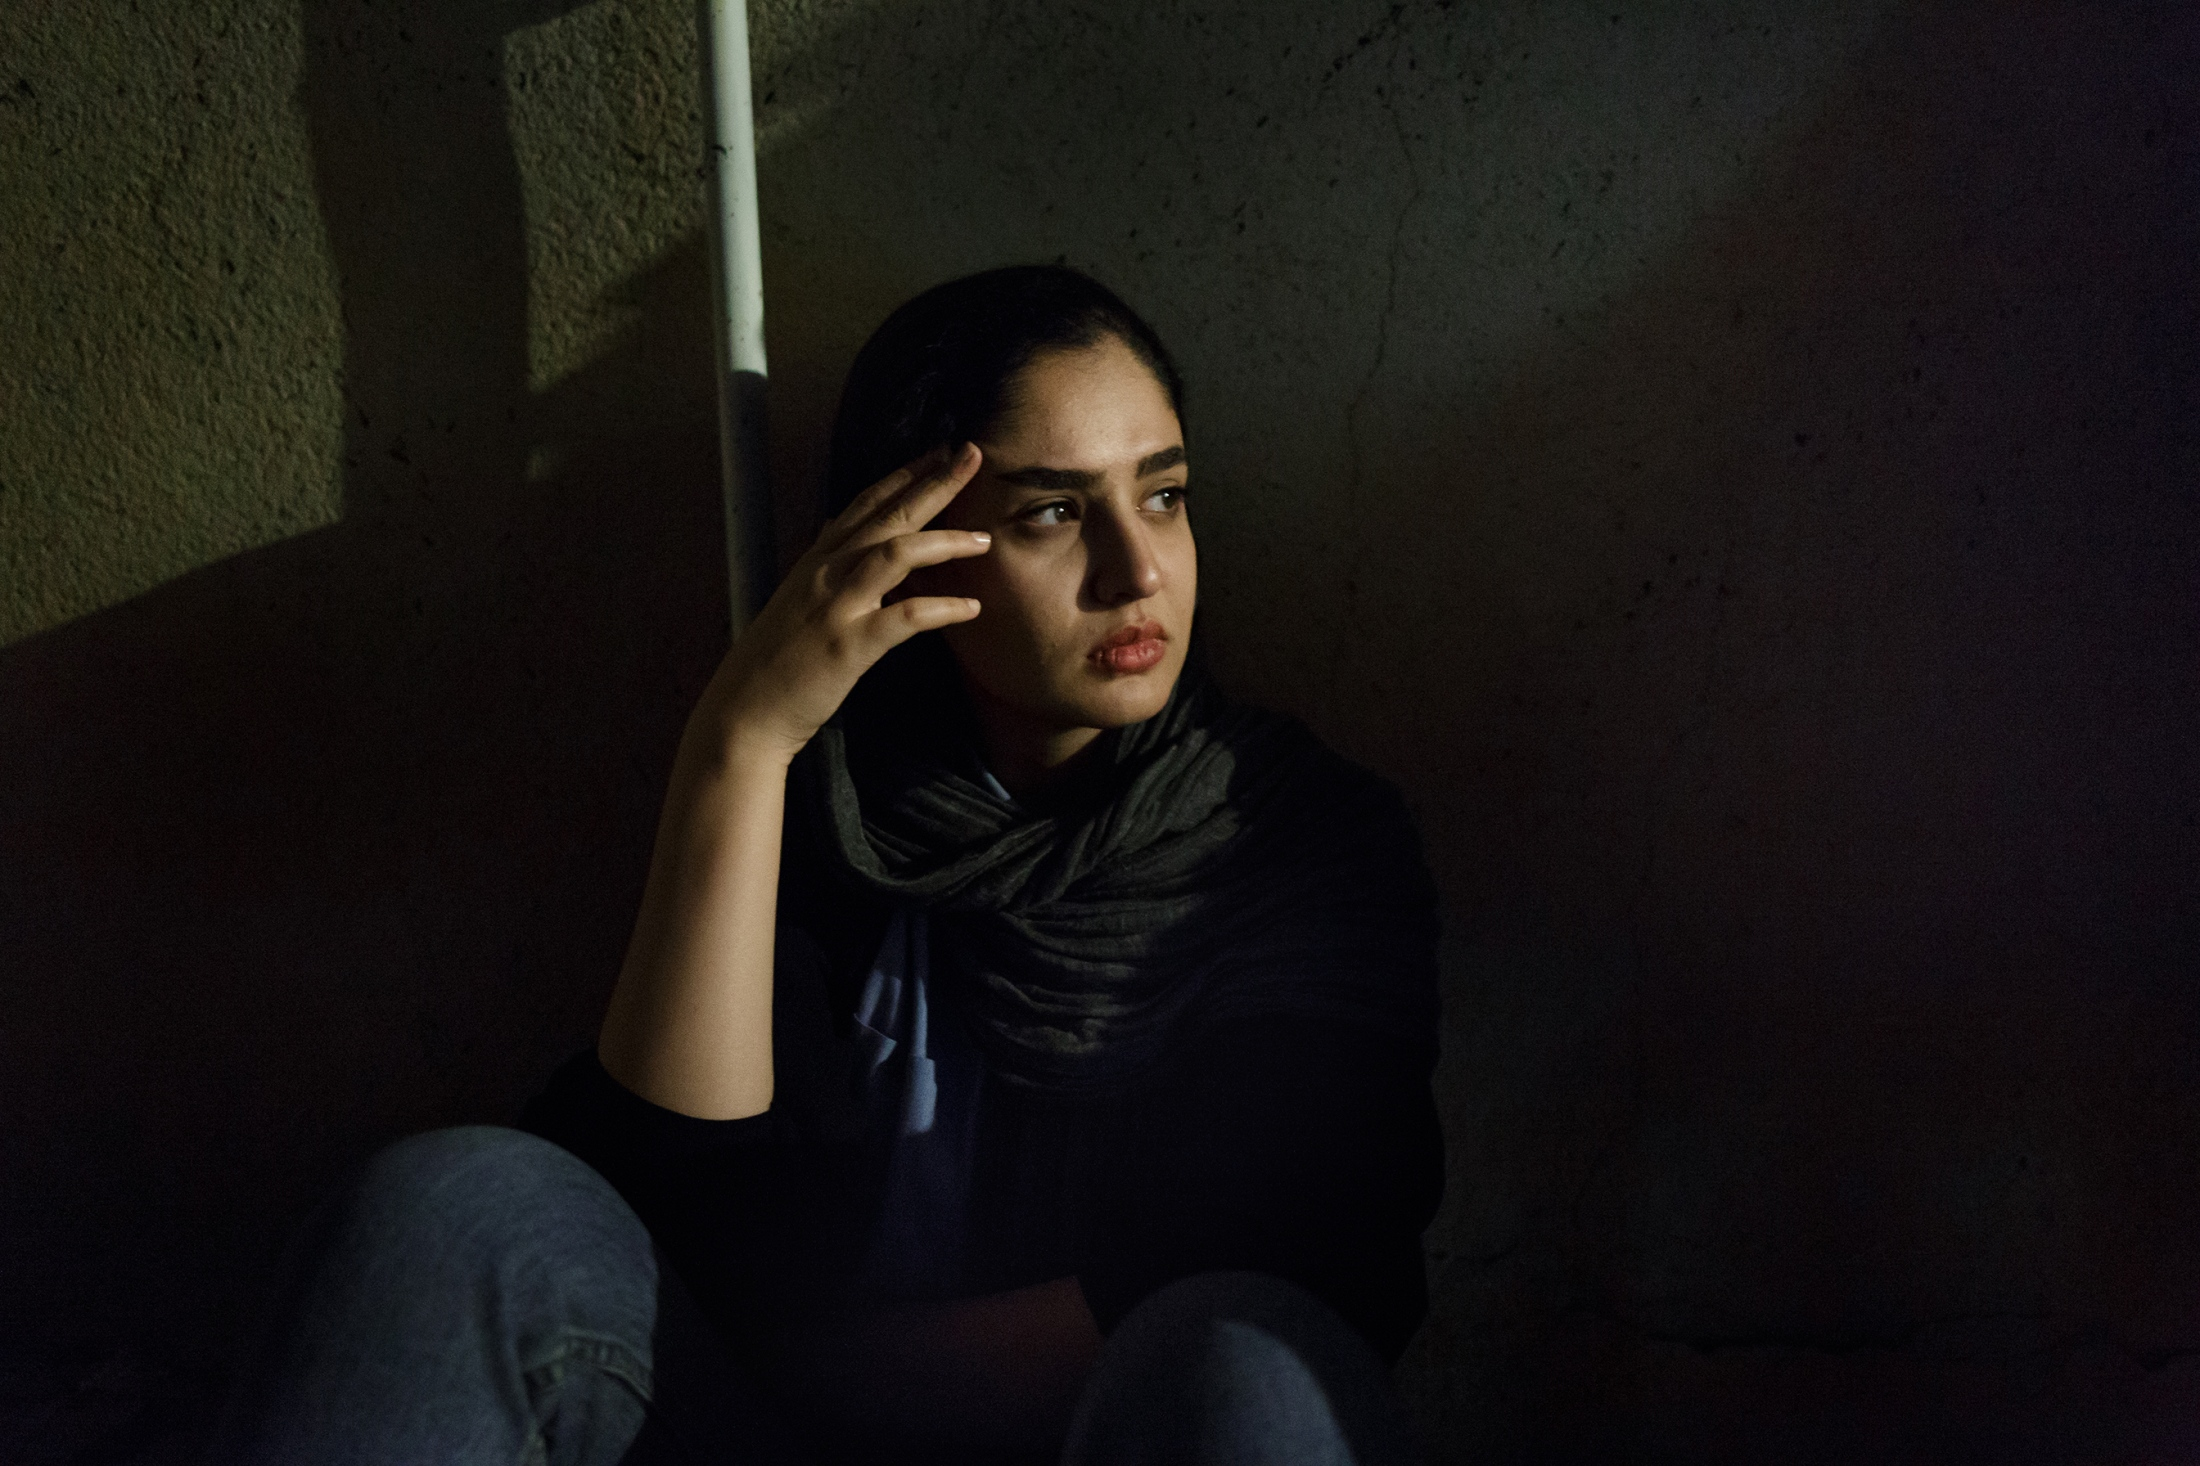 """""""It seems as we do not belong anywhere. We strive for a better life, but we can not nd it here. """"- Sara, 22, is from Sanandaj and studied psychology. She longs for a place of hope."""